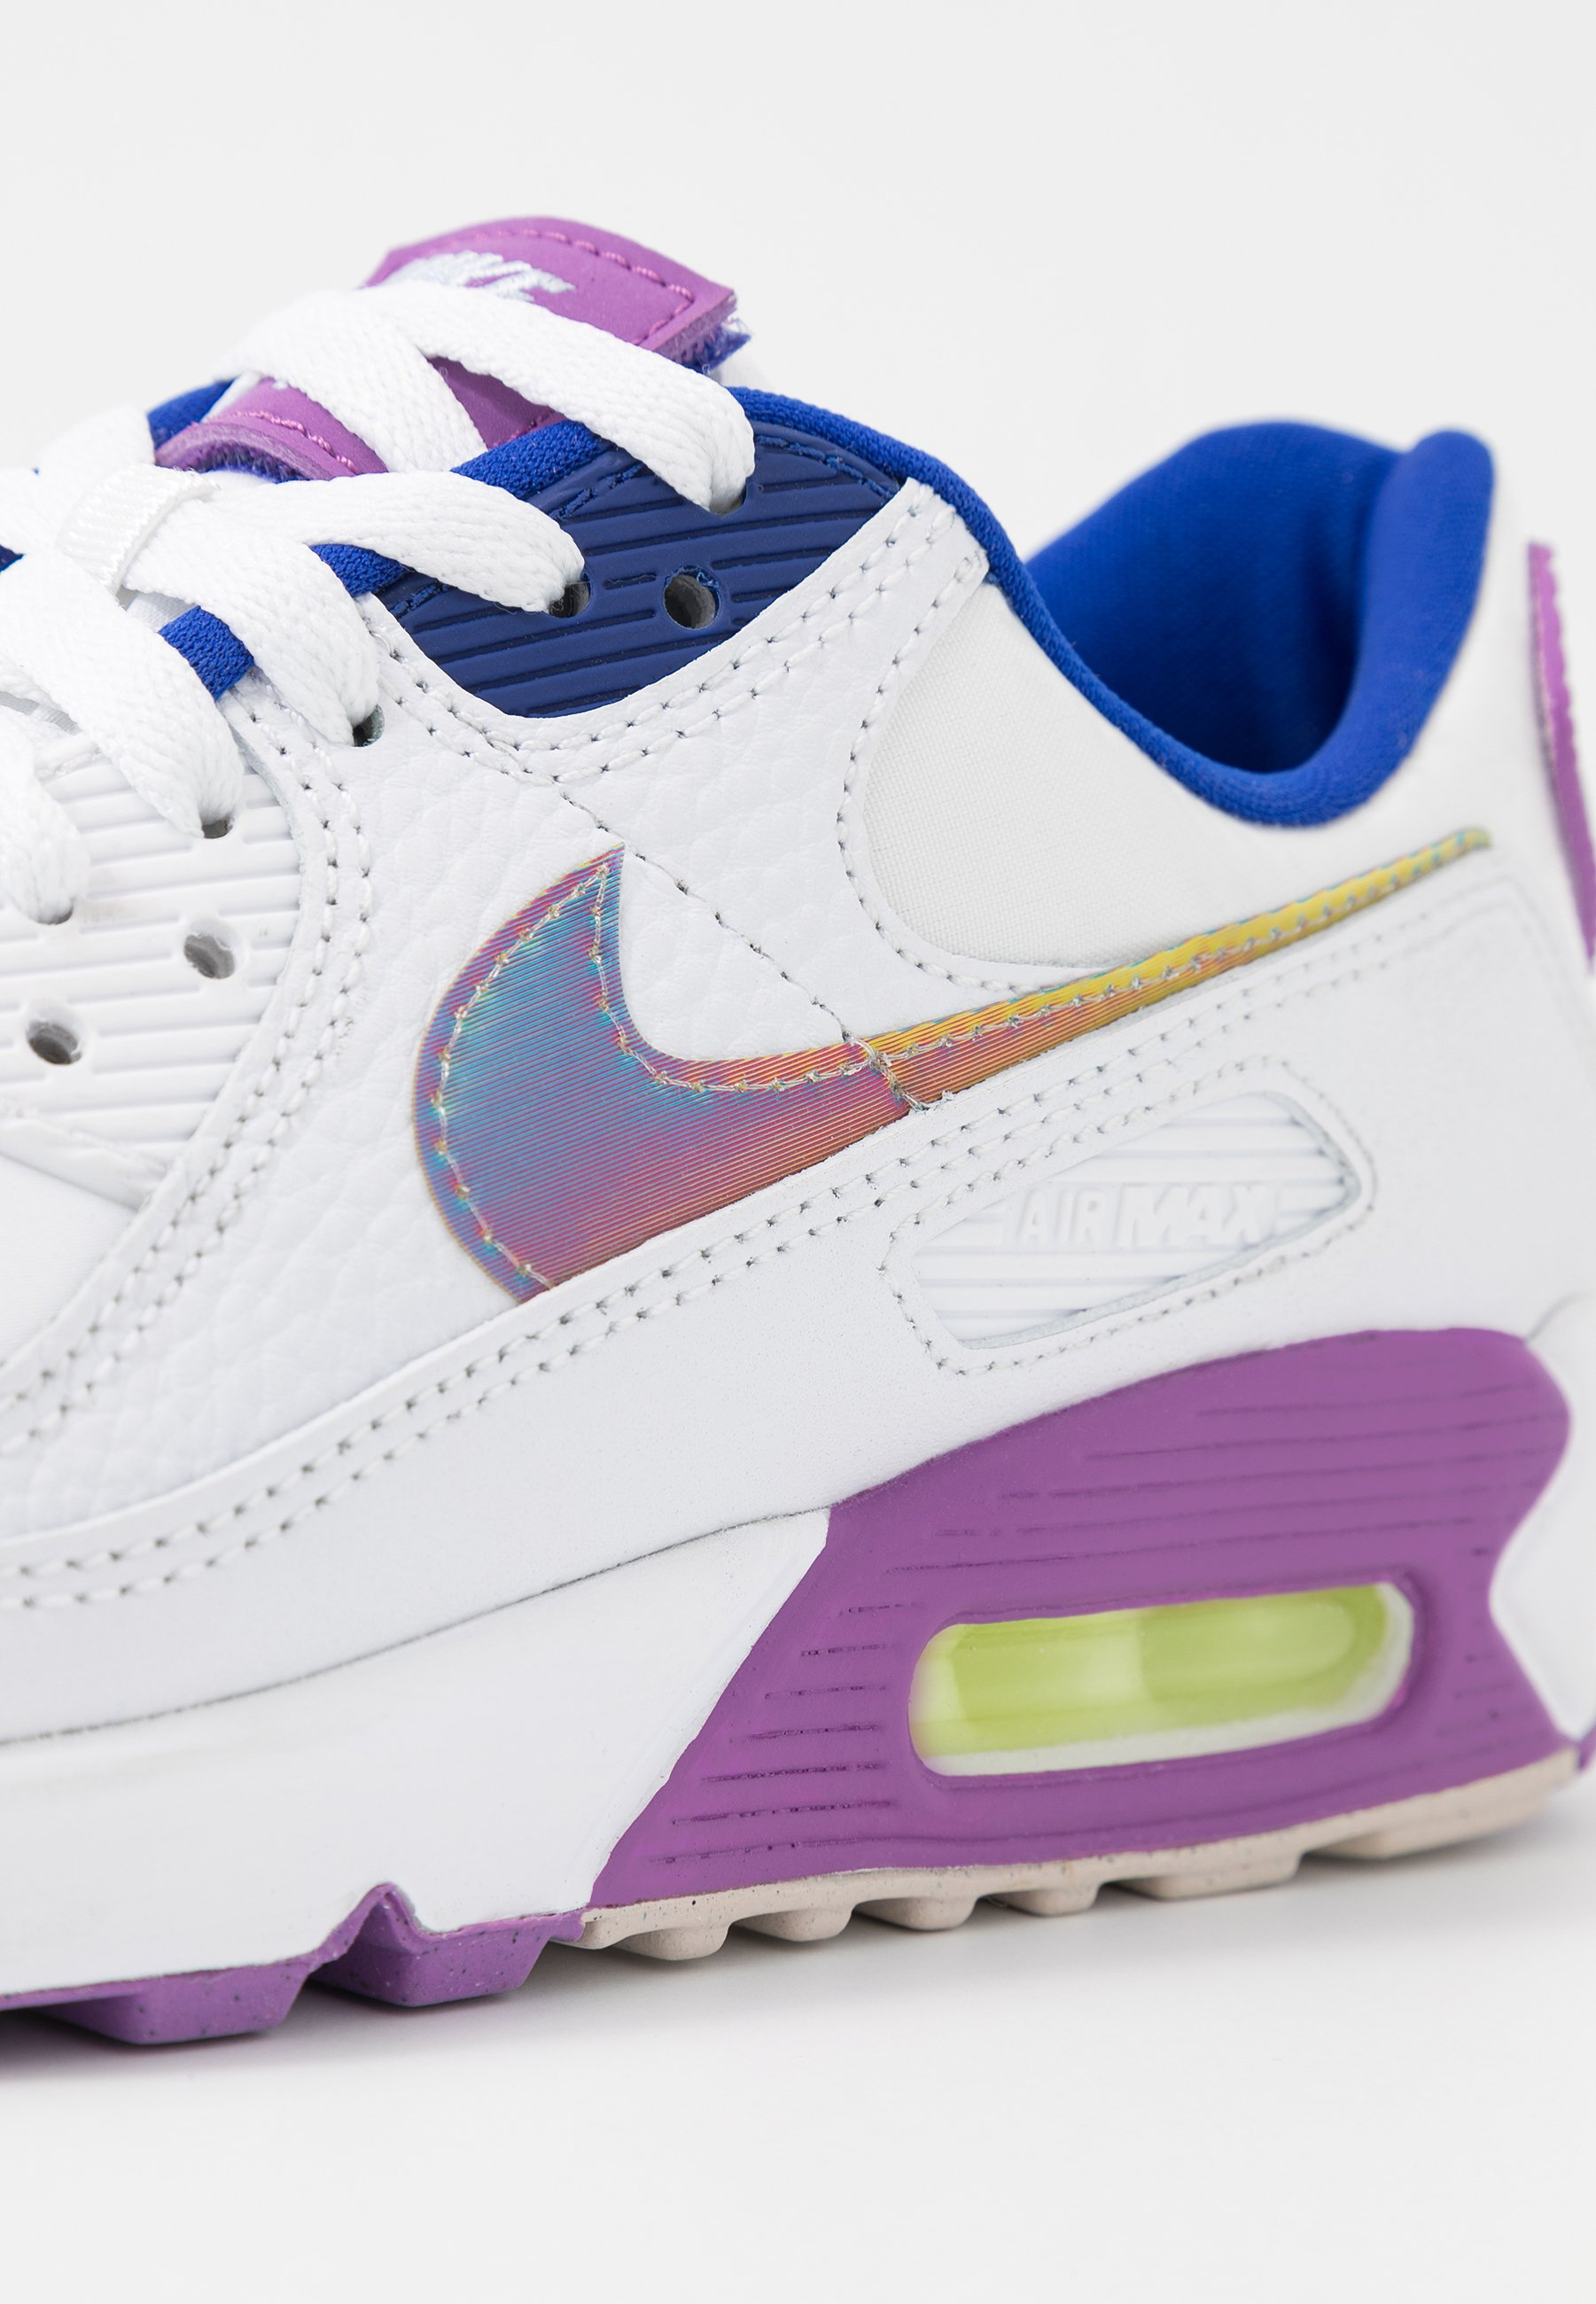 AIR MAX 90 Sneakers laag whitemulticolorpurplebarely volthyper bluehydrogen blue